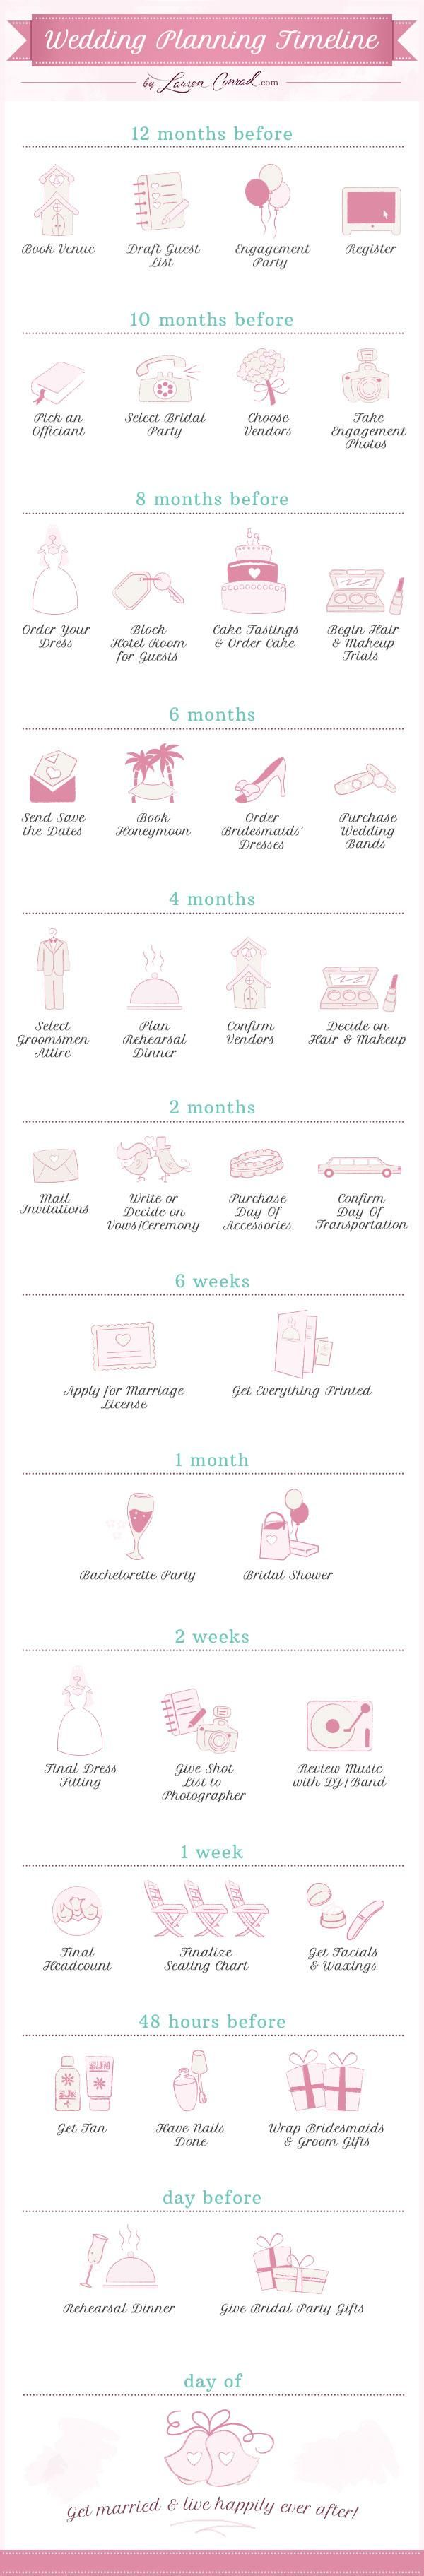 Wedding Bells: the Wedding Planning Timeline... a little excessive for me but def. A good idea to have a timeline